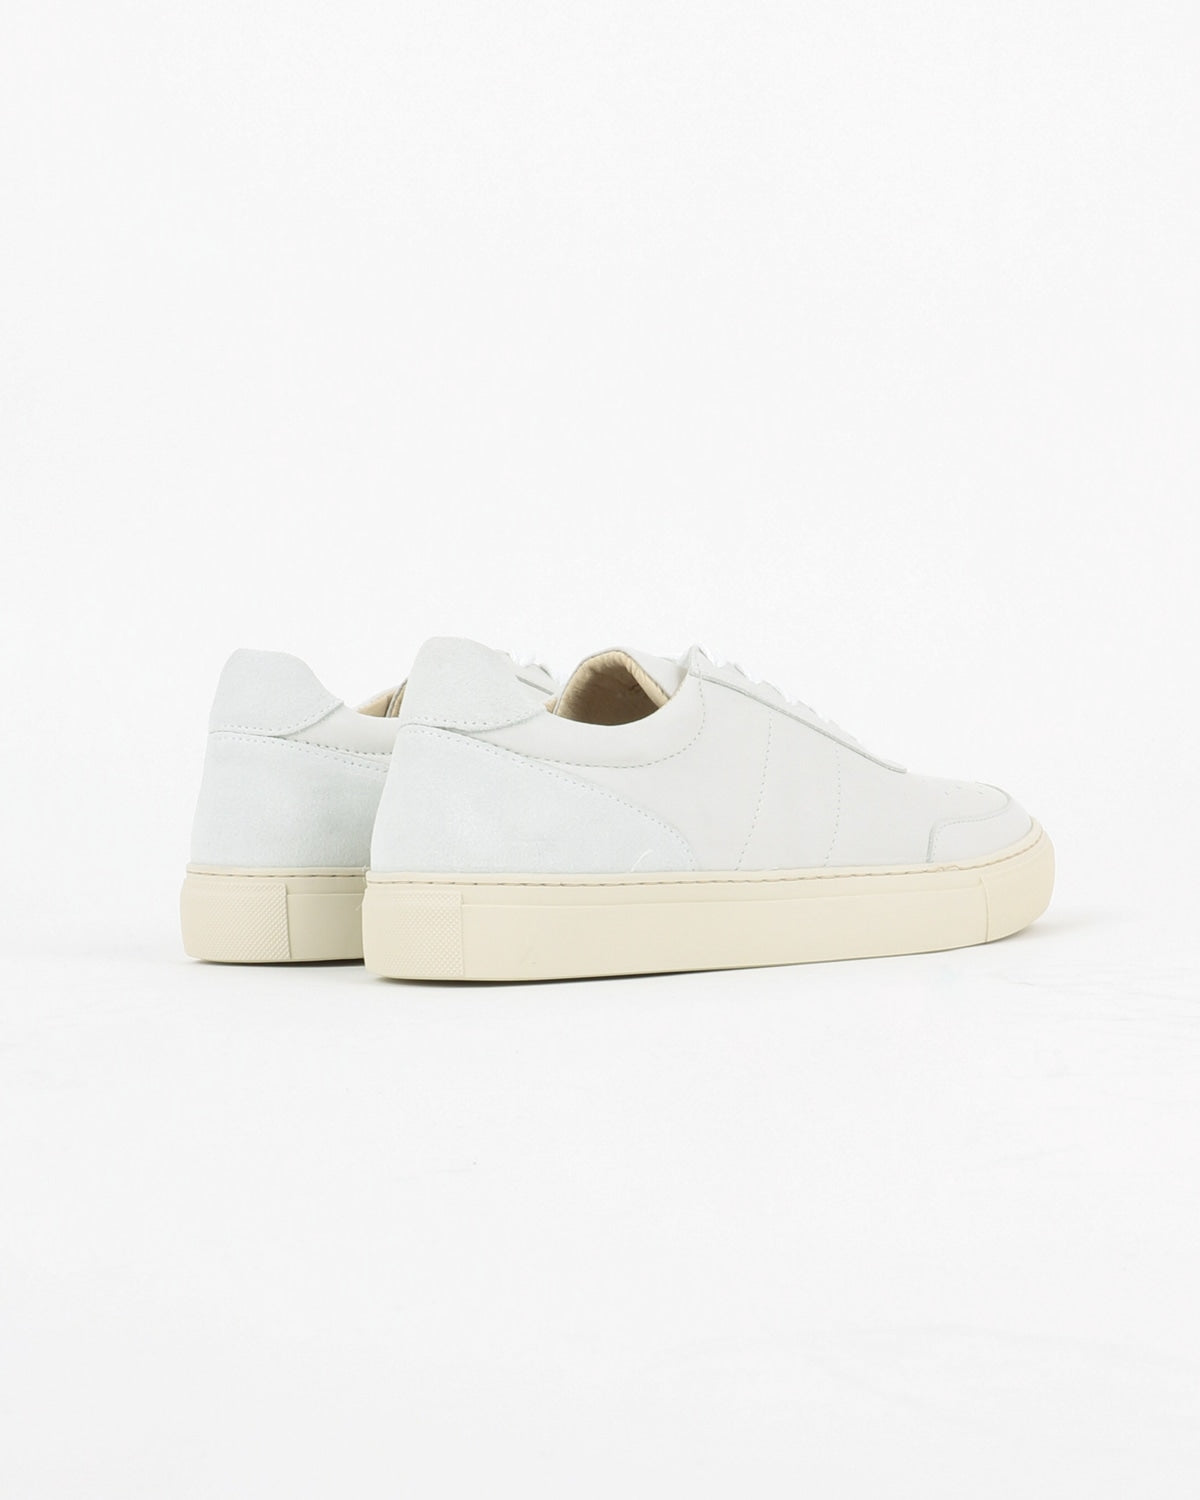 garment project_base low sneaker_white leather_view_3_4